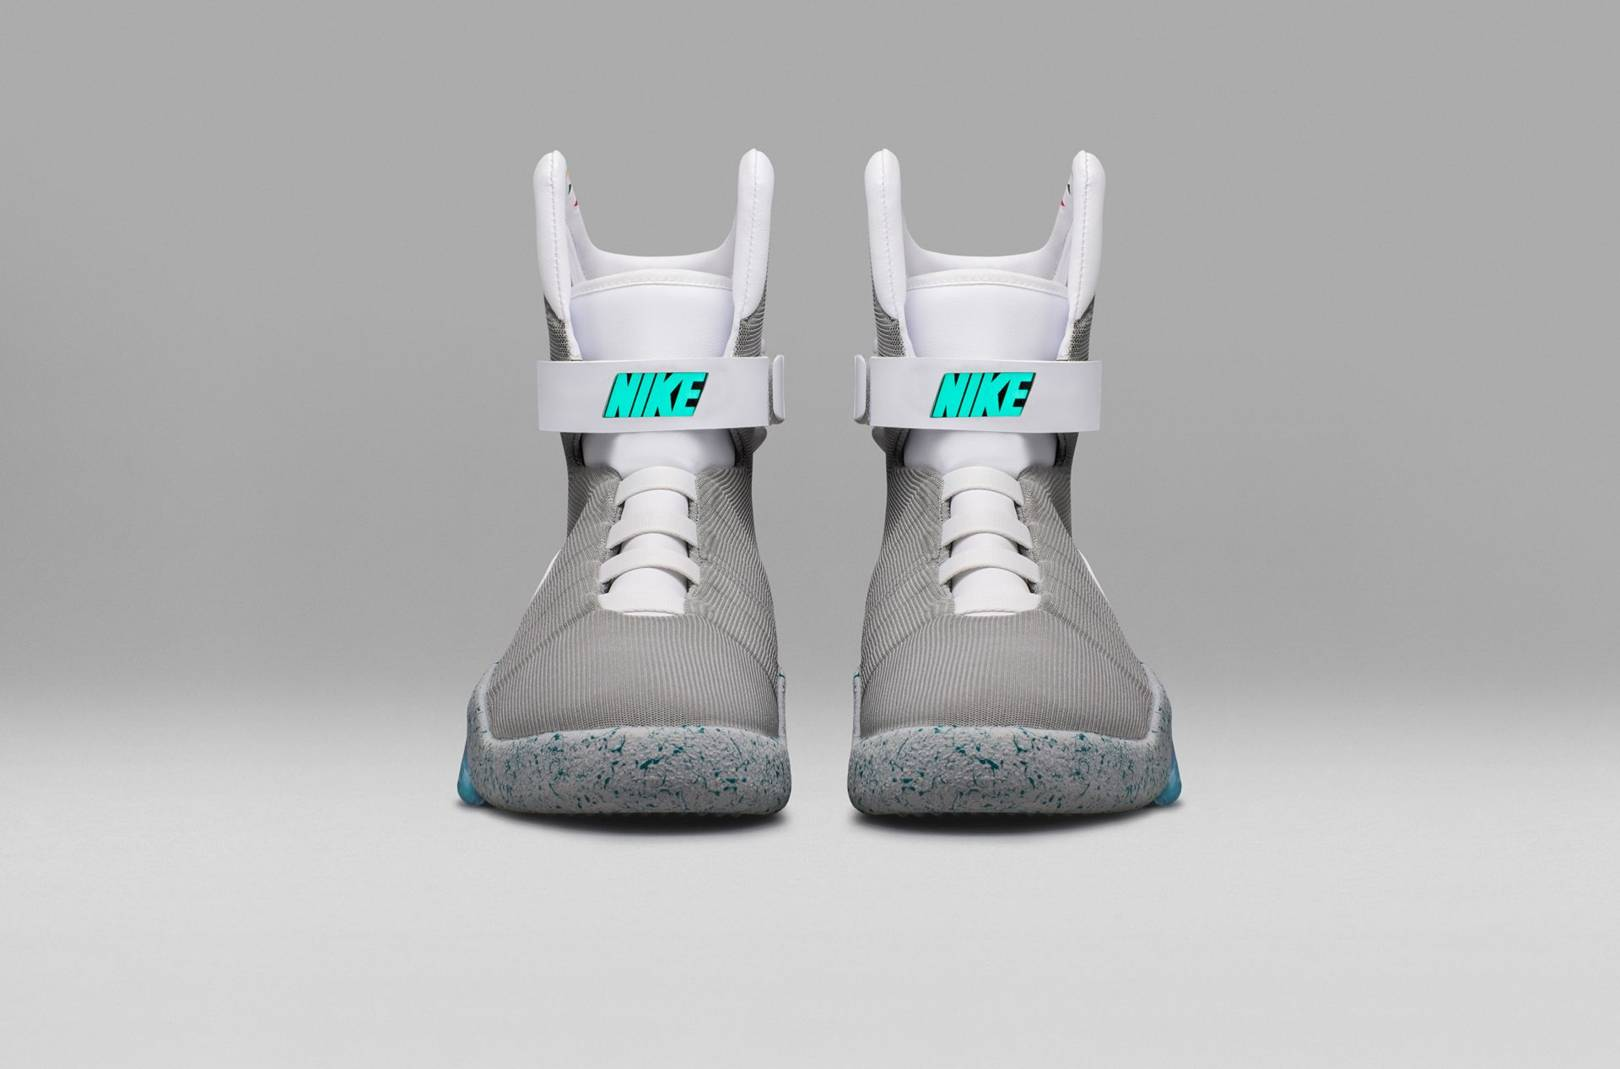 09aa4c642 Nike Mags  how to get a pair of Nike Mag sneakers and trainer review ...